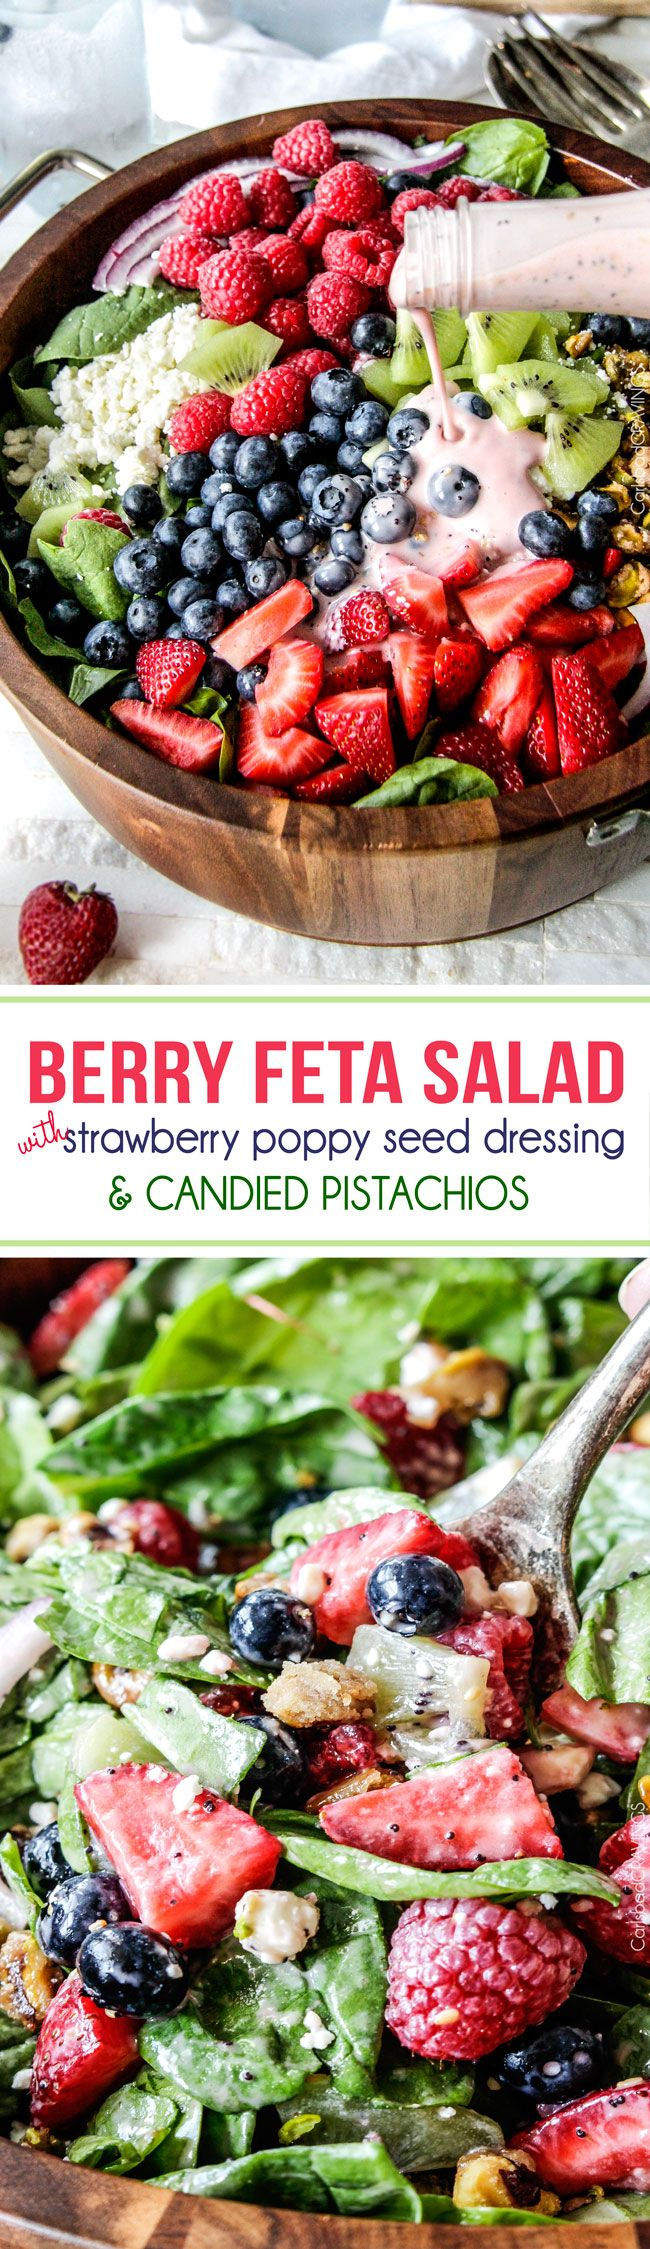 Berry Feta Spinach Salad with Creamy Strawberry Poppy Seed Dressing and CANDIED pistachios